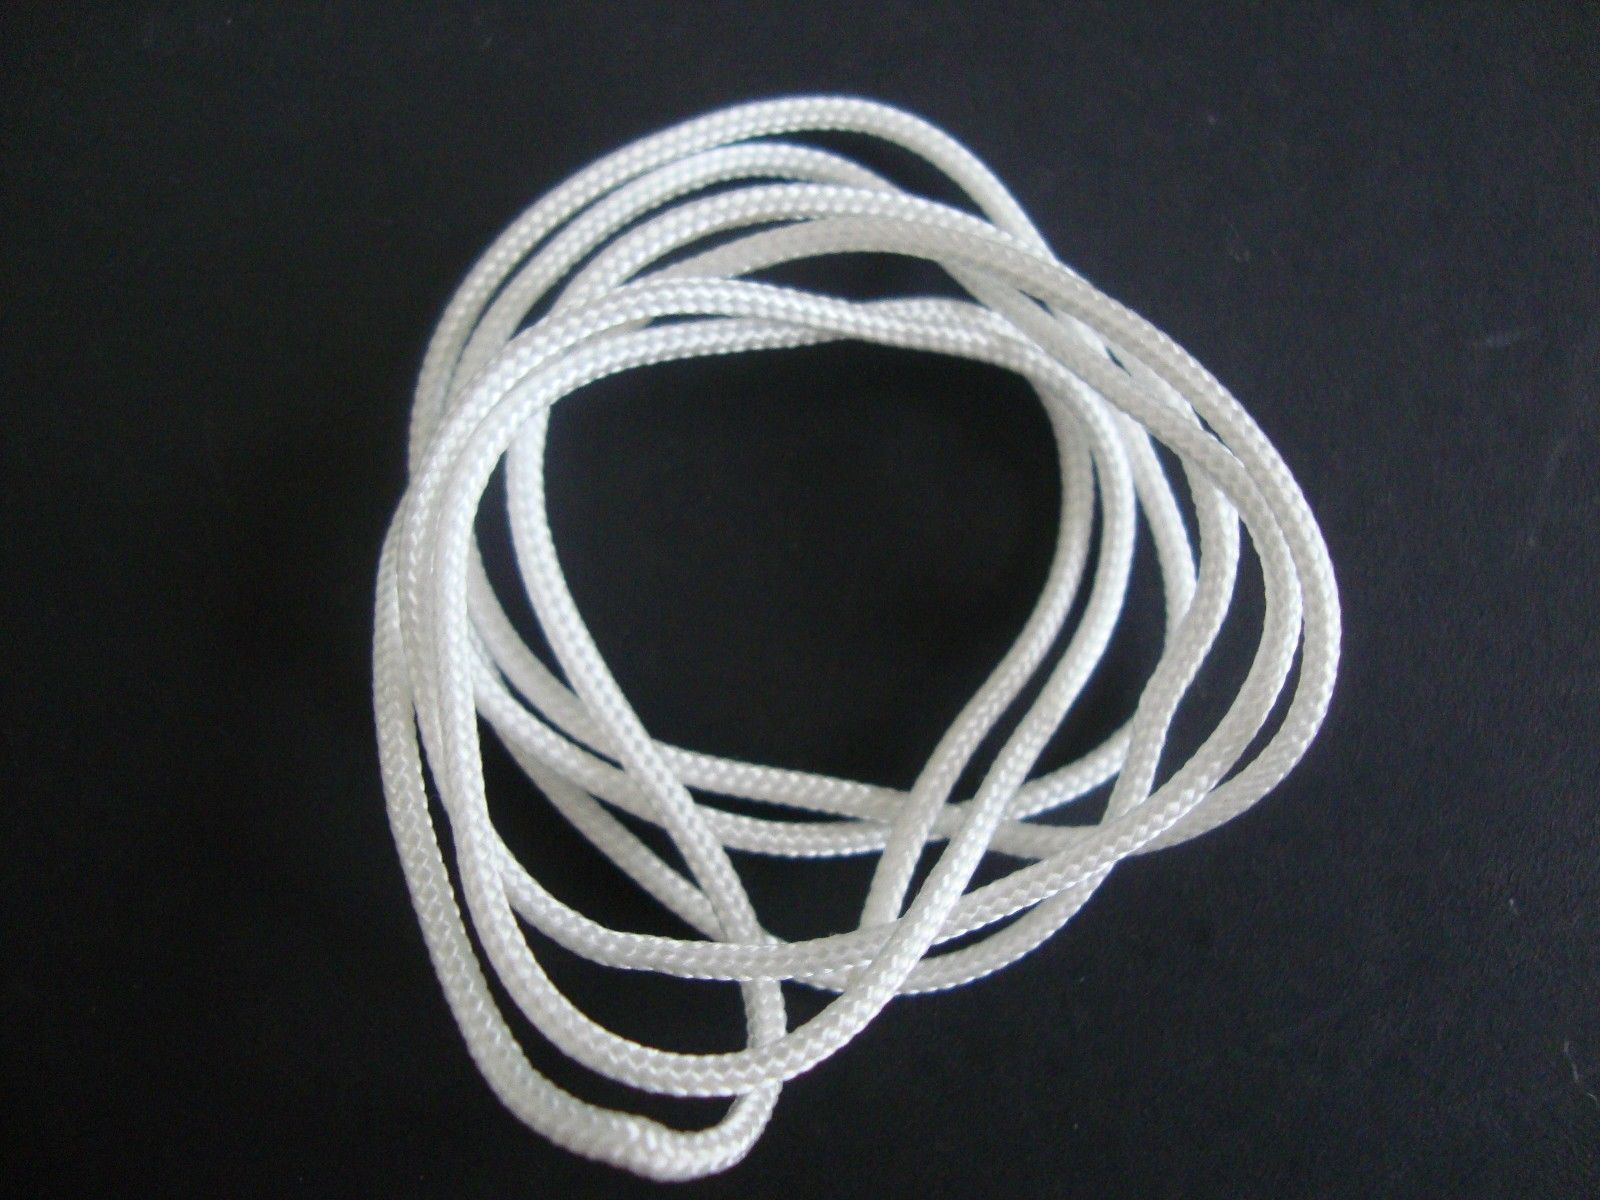 100 FEET :1.8mm WHITE LIFT CORD for Blinds, Roman Shades and More